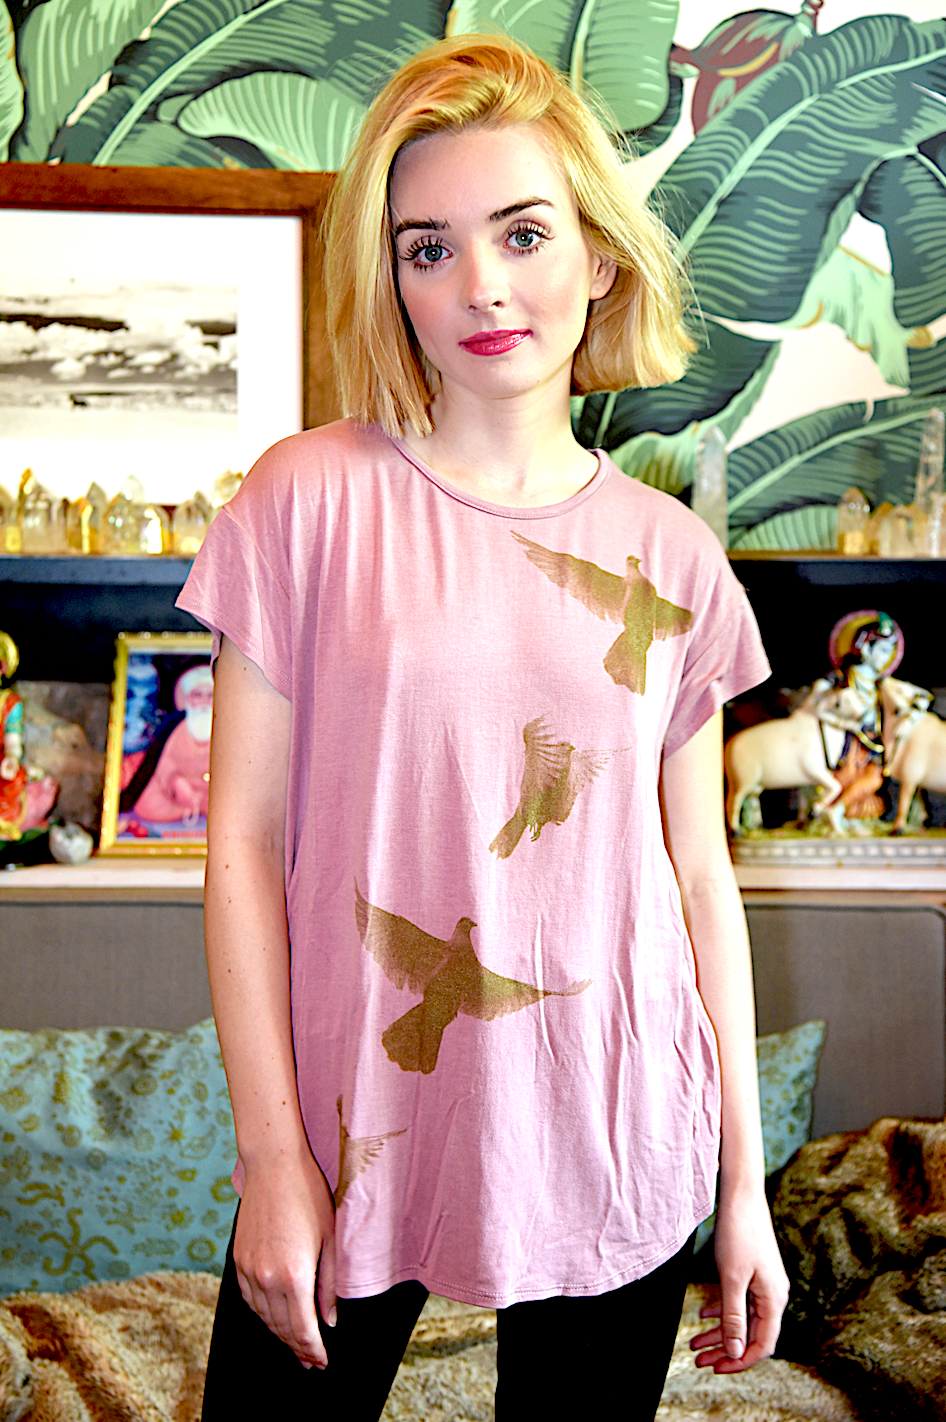 WABI SABI SALE Spinning Birds Shirt in Dusty Rose with Cross-Back